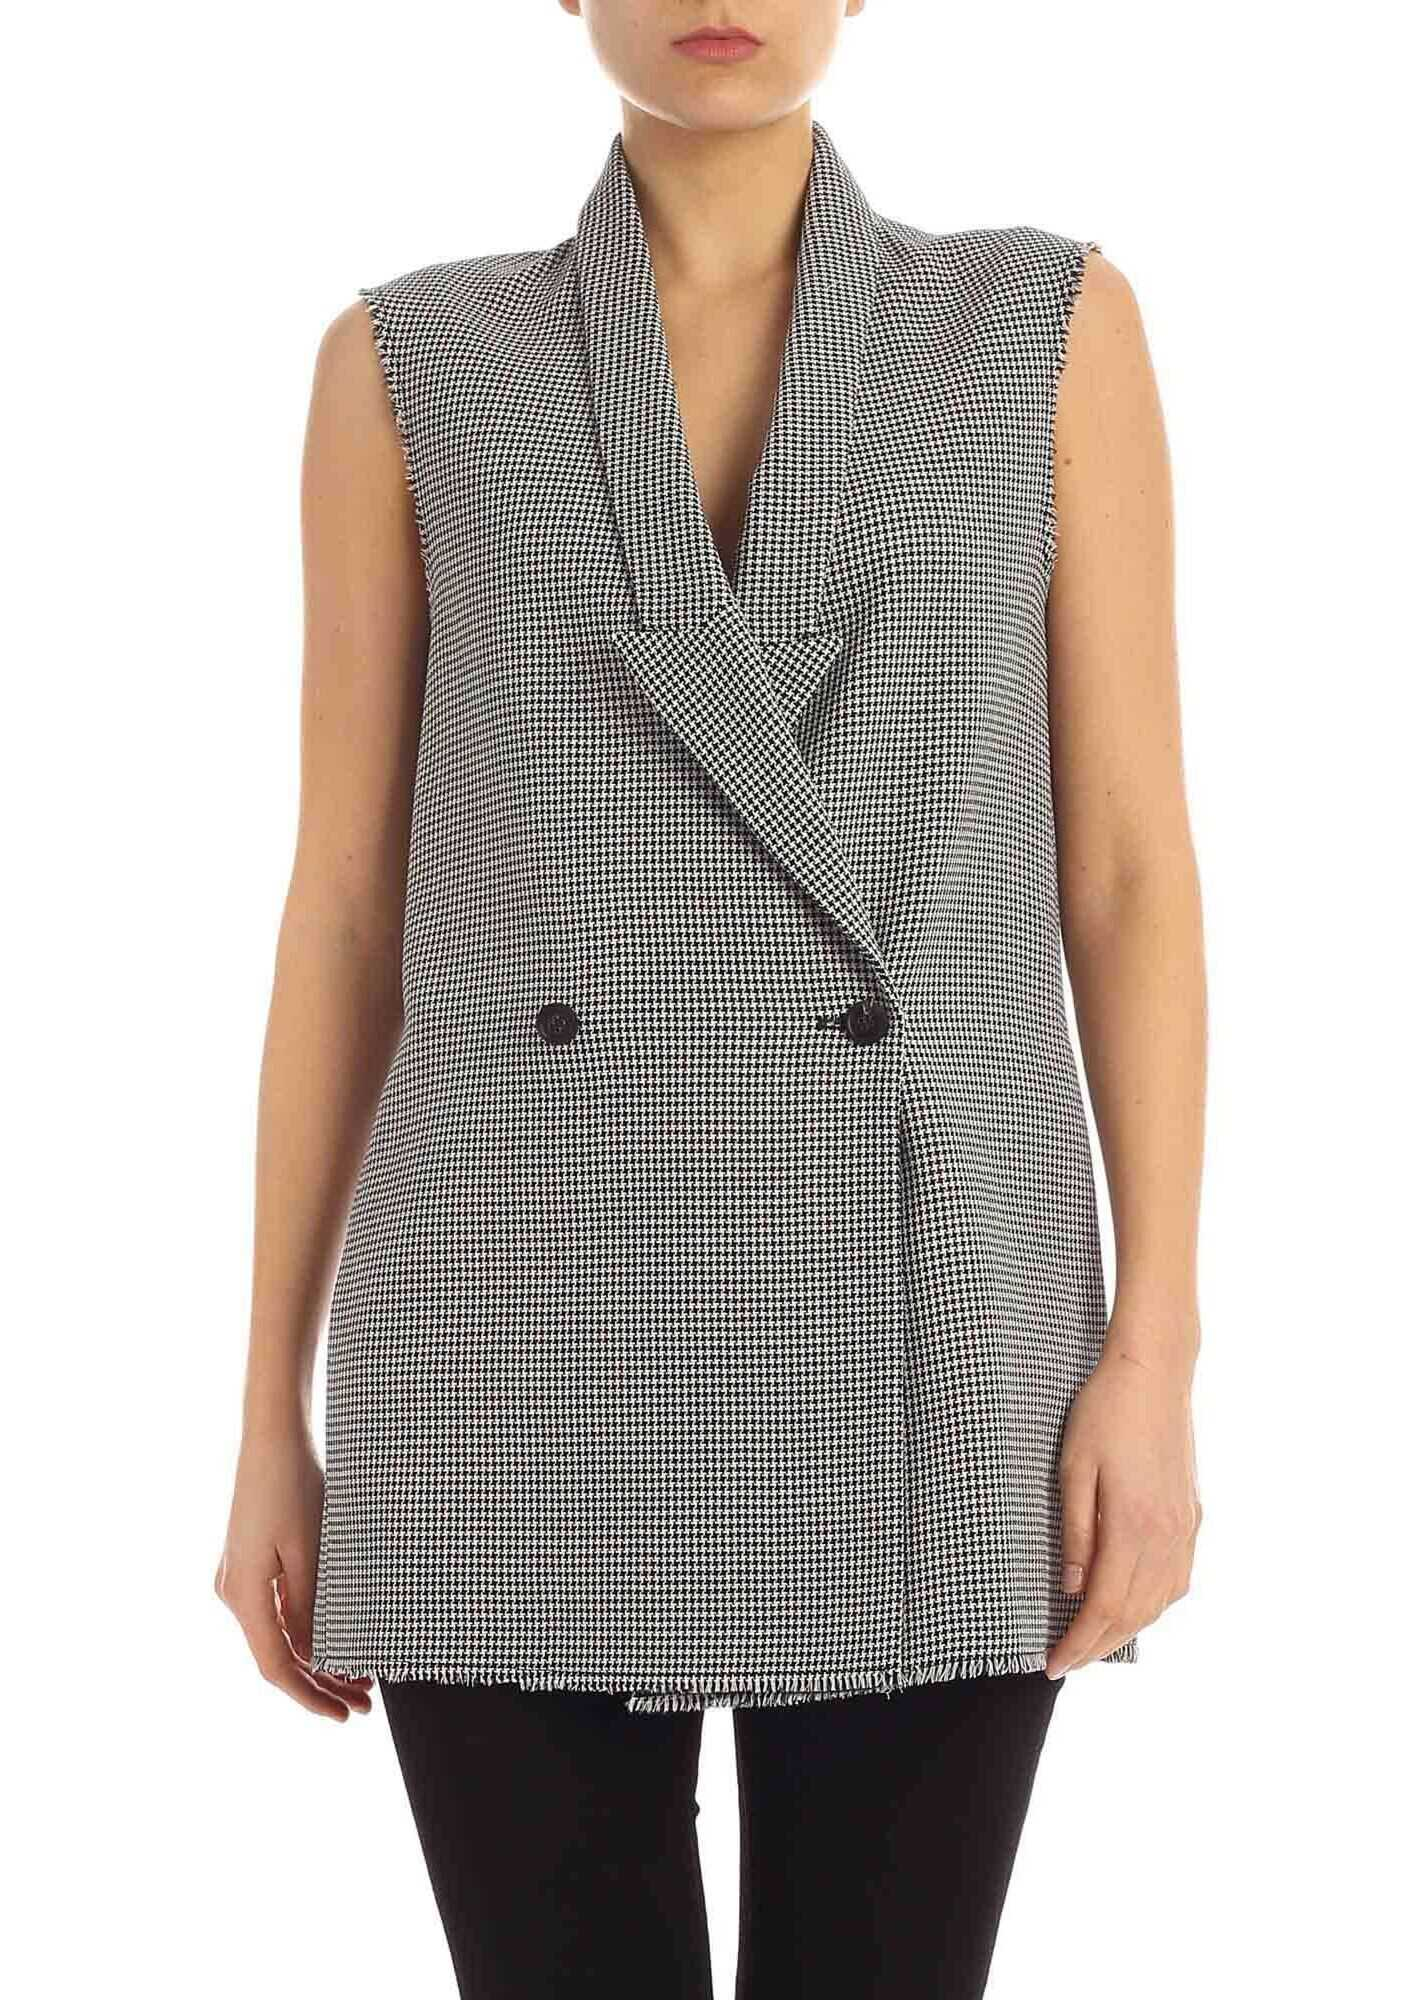 Golden Goose Jennifer Waistcoat In Black And White Black